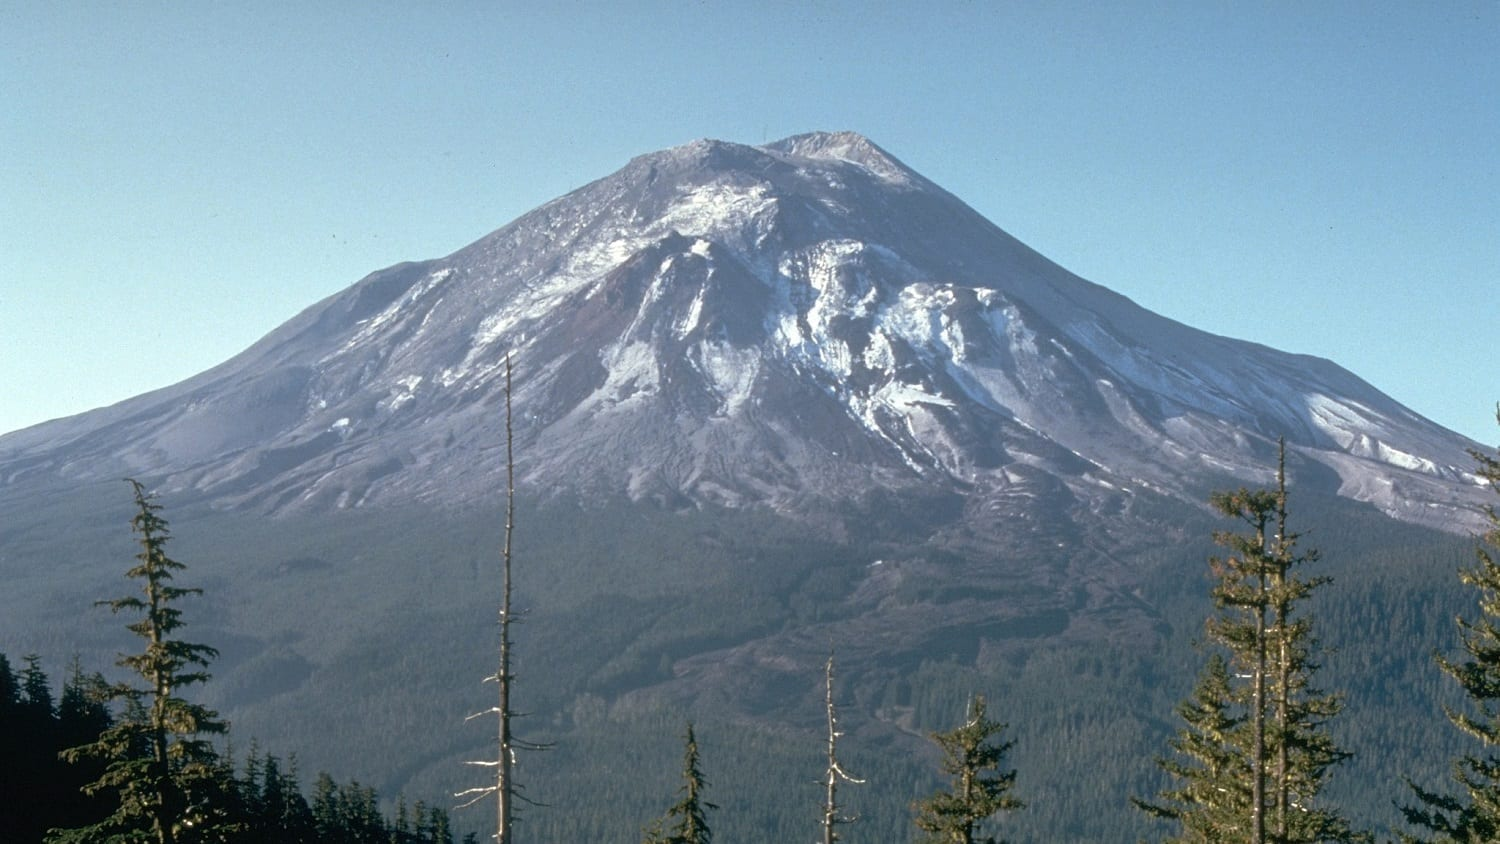 Mount St. Helens, May 17, 1980, photo credit: USGS